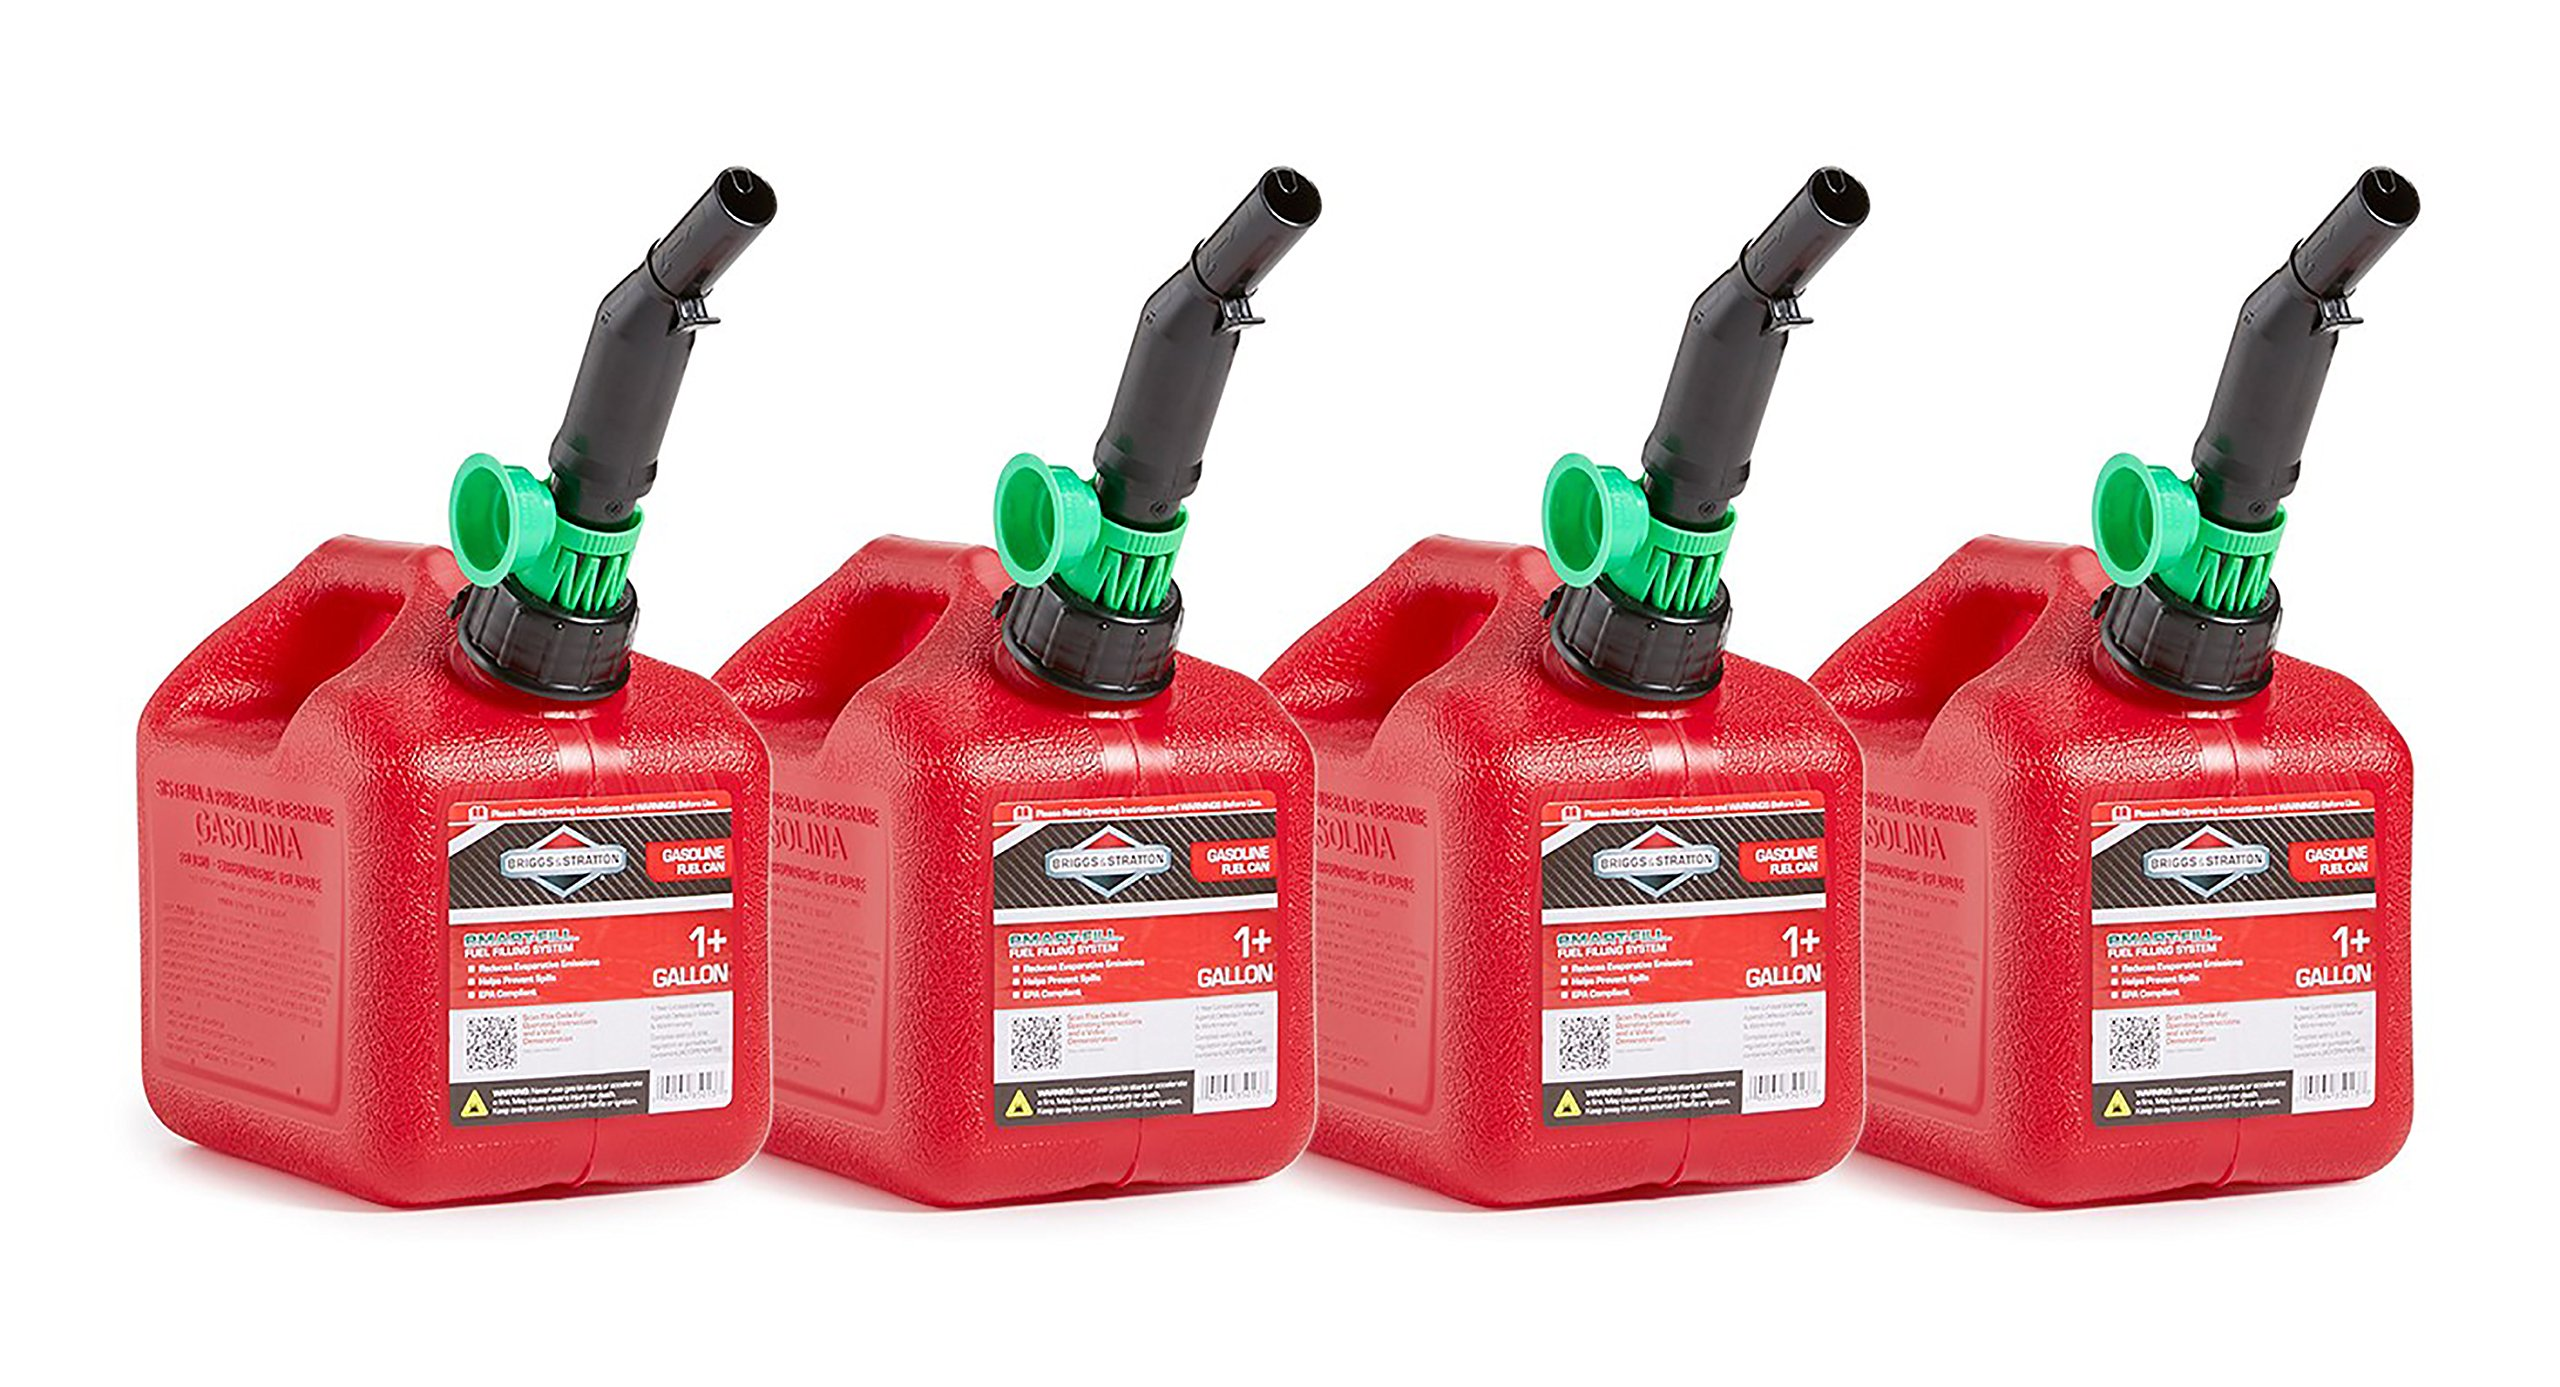 Briggs & Stratton 86013 Smart-Fill 1+ Gallon Gas Cans (4 Pack)